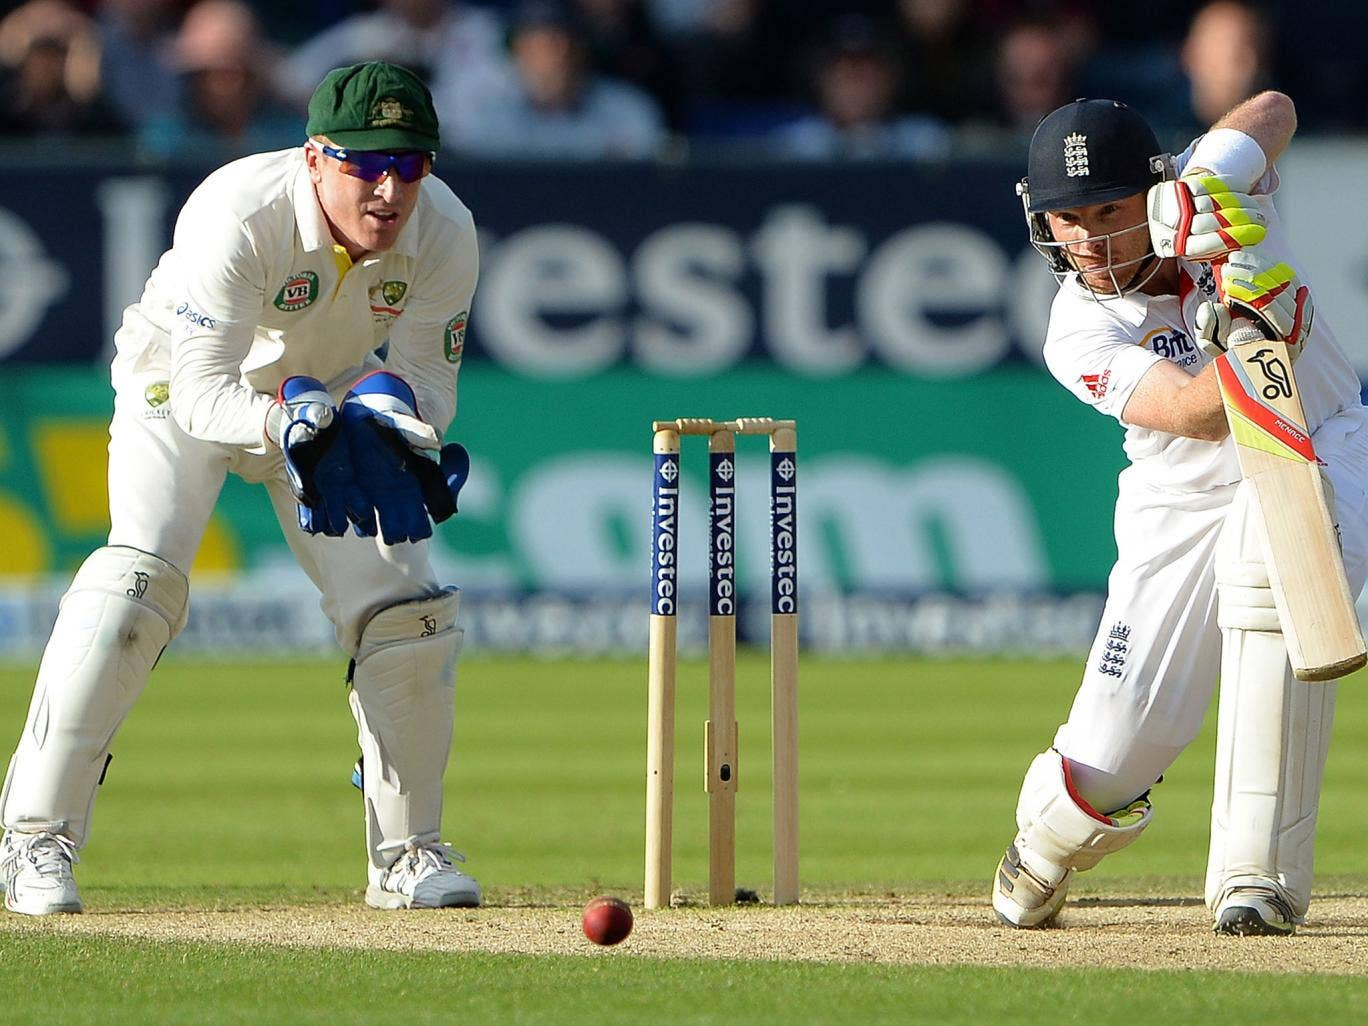 Ian Bell never gave Australia a chance in a four-hour hundred which took his series tally to almost 500